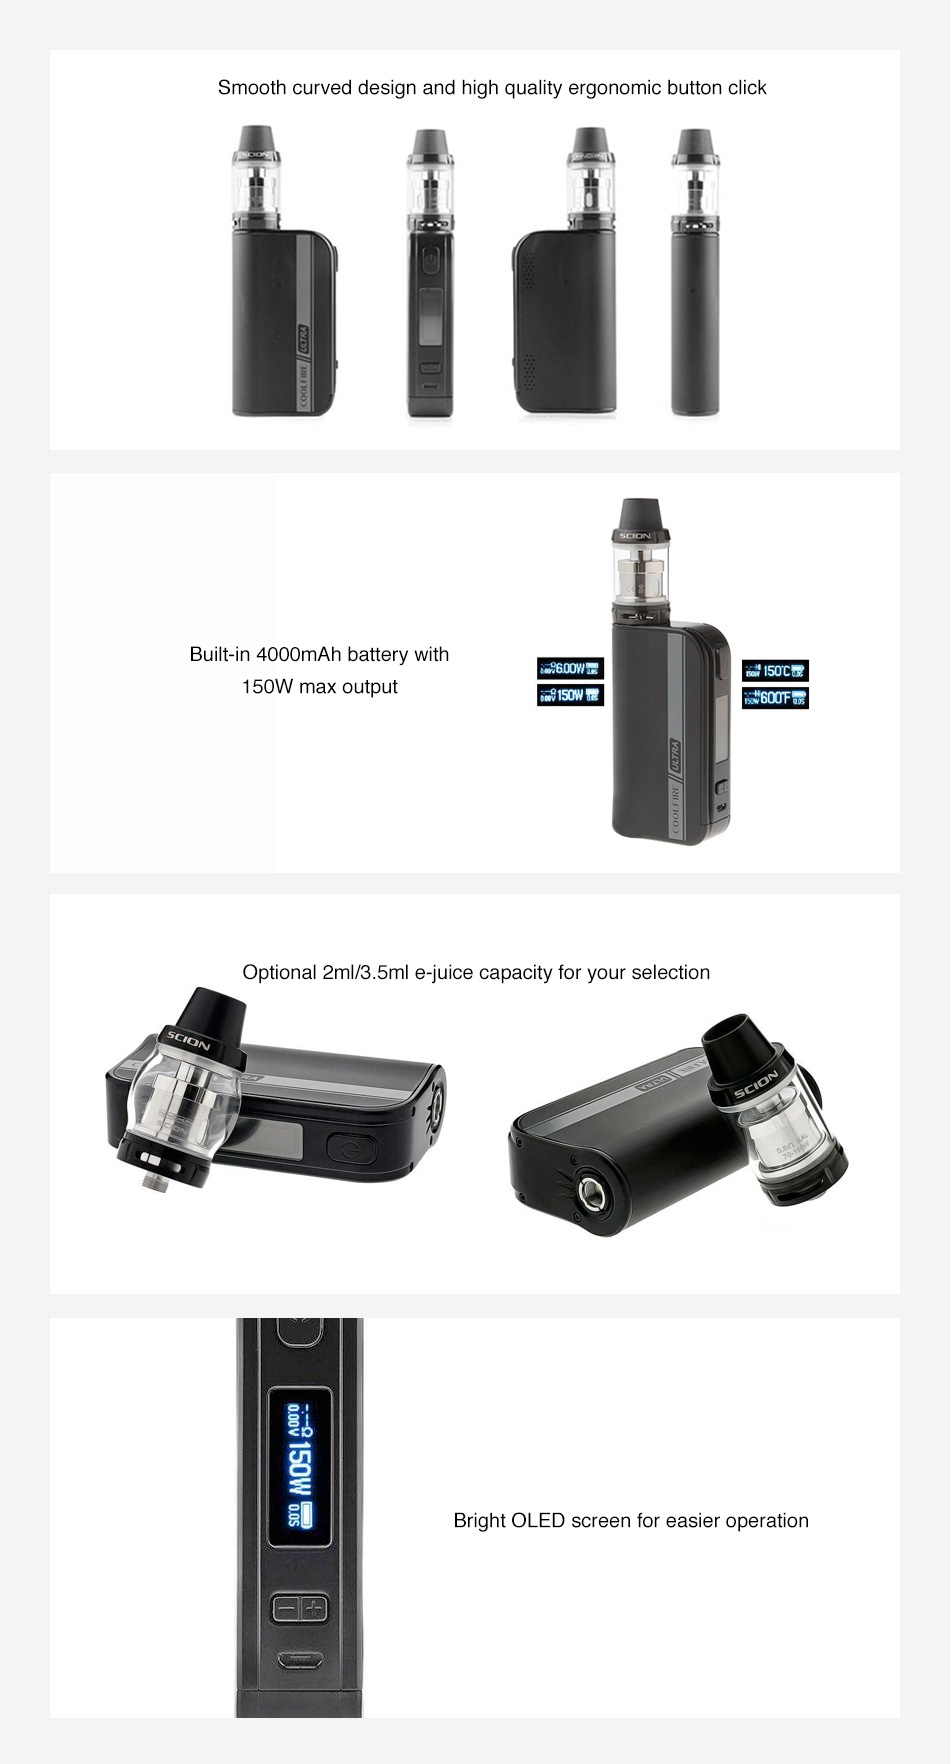 Innokin CoolFire Ultra 150W TC Kit with Scion Tank 4000mAh Smooth curved design and high quality ergonomic button click Built in 4000mAh battery with 600W  150W max output 150W  600Fs3 Optional 2ml 3  5ml e juice capacity for your selection Bright OLED screen for easier operation